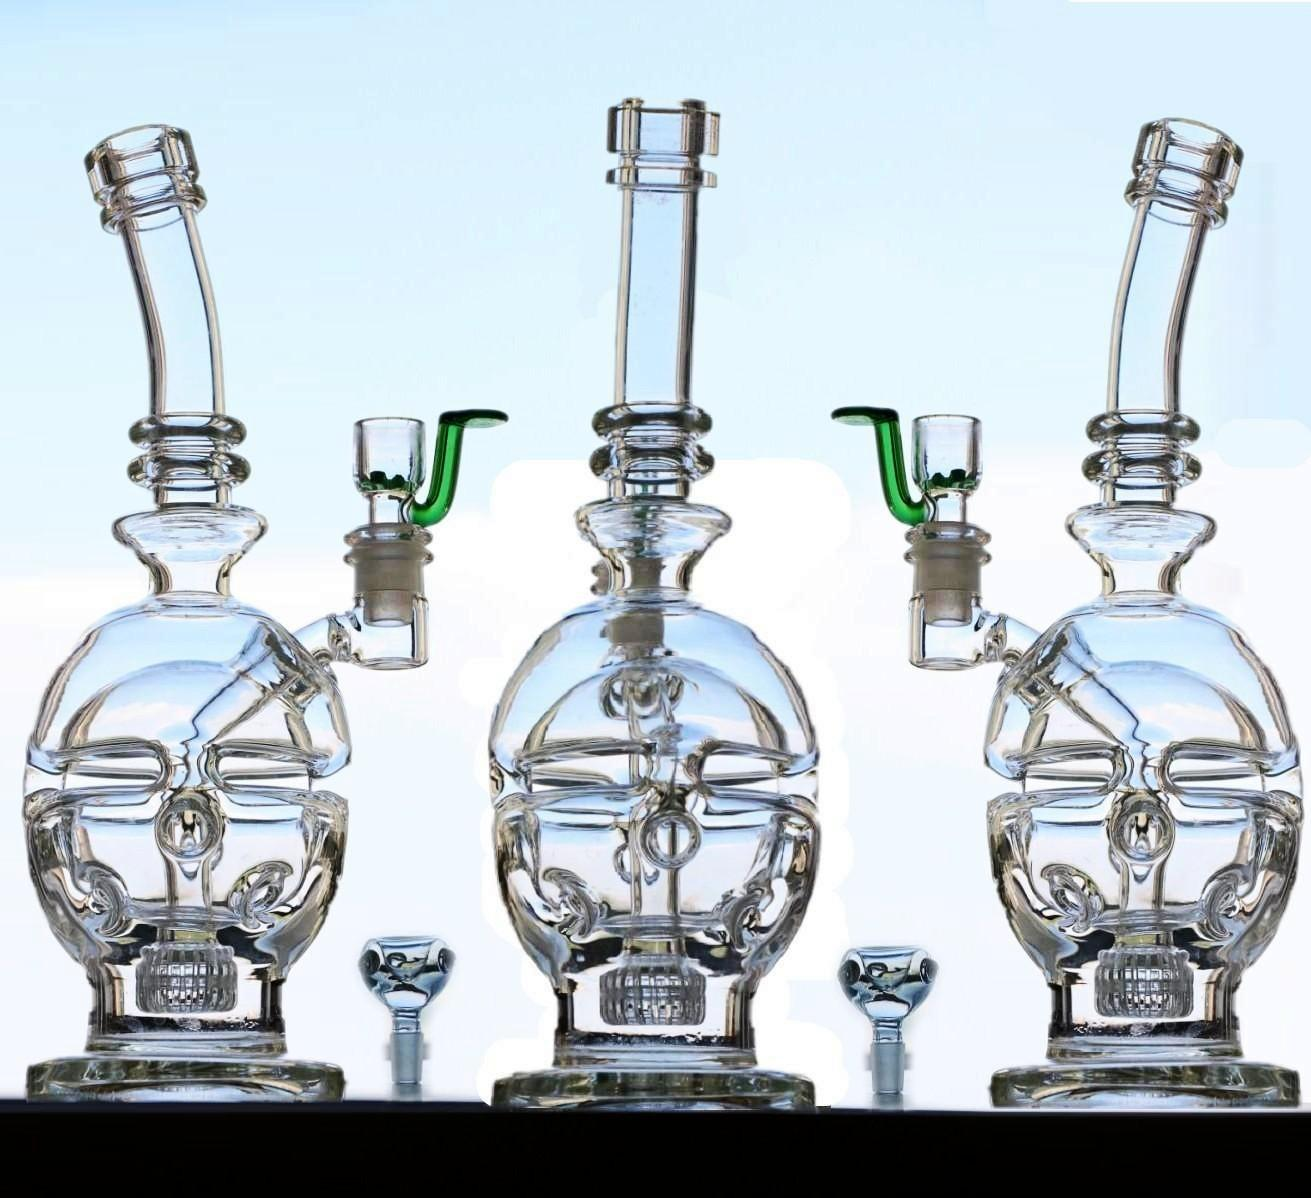 Real Photos Glass Bongs Skull Bong 14.4mm Joint Heady Shop Fab Egg Smoking water Pipes Oil Rigs Glass Bongs Hookahs 10inches